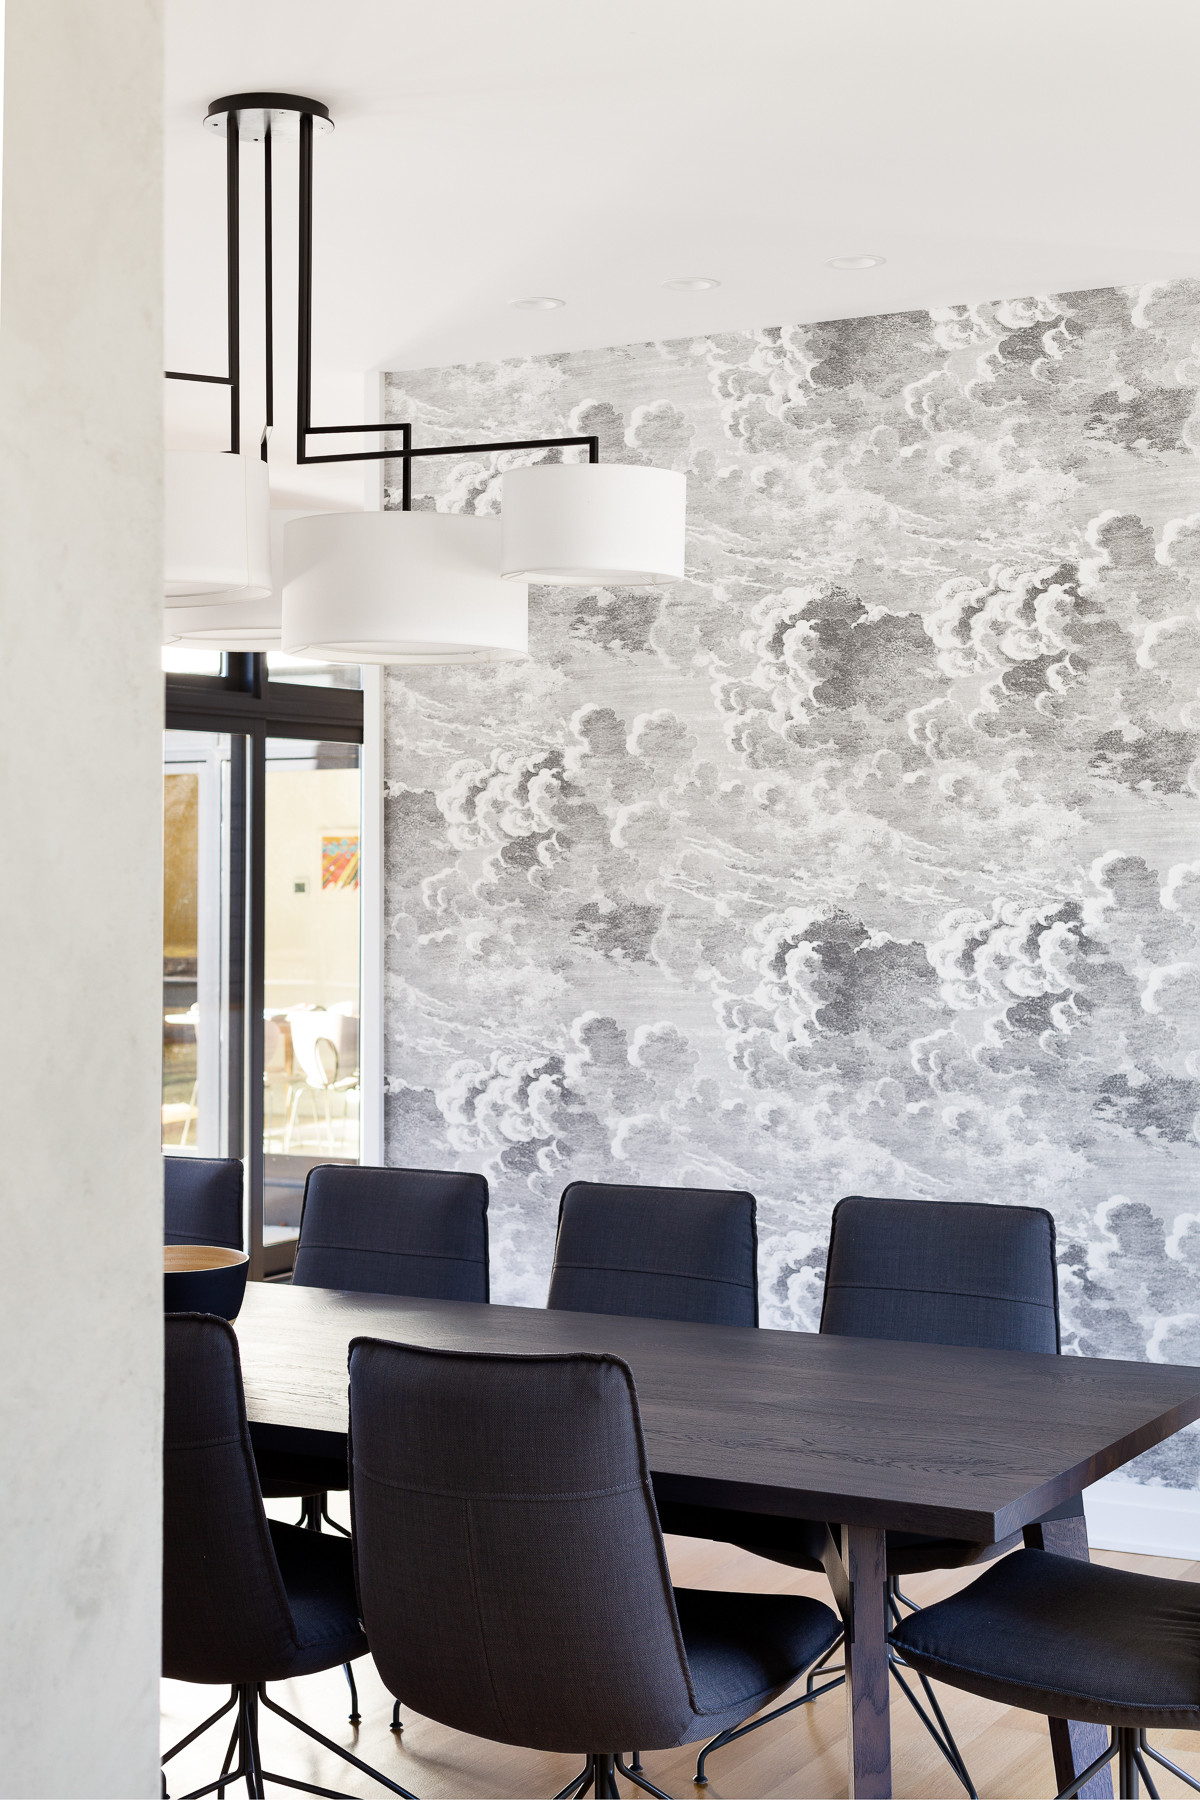 75 Beautiful Contemporary Dining Room Pictures Ideas January 2021 Houzz